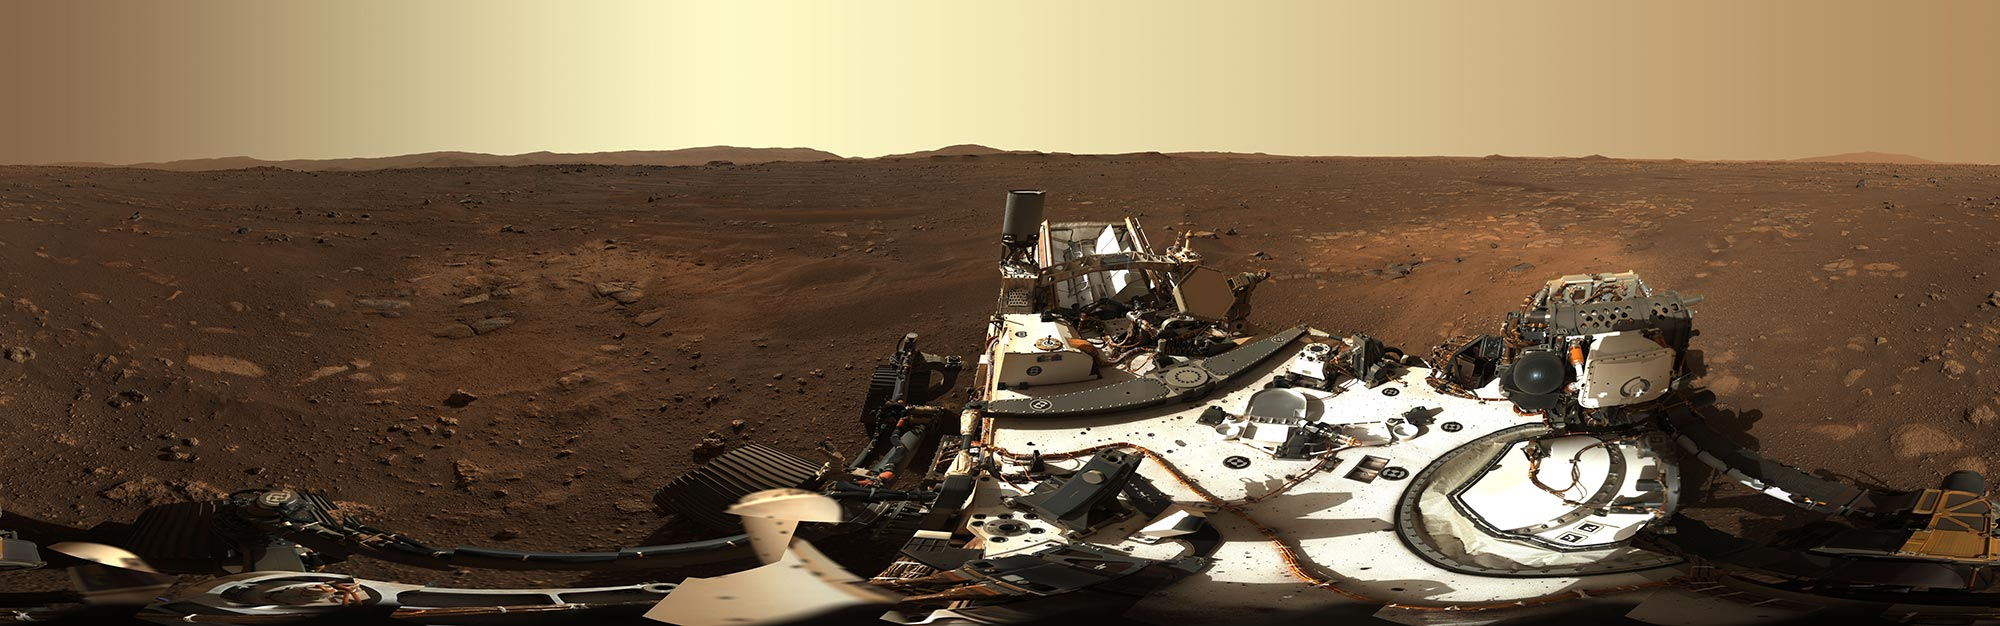 NASA Perseverance Rover Sends First Panoramic Views